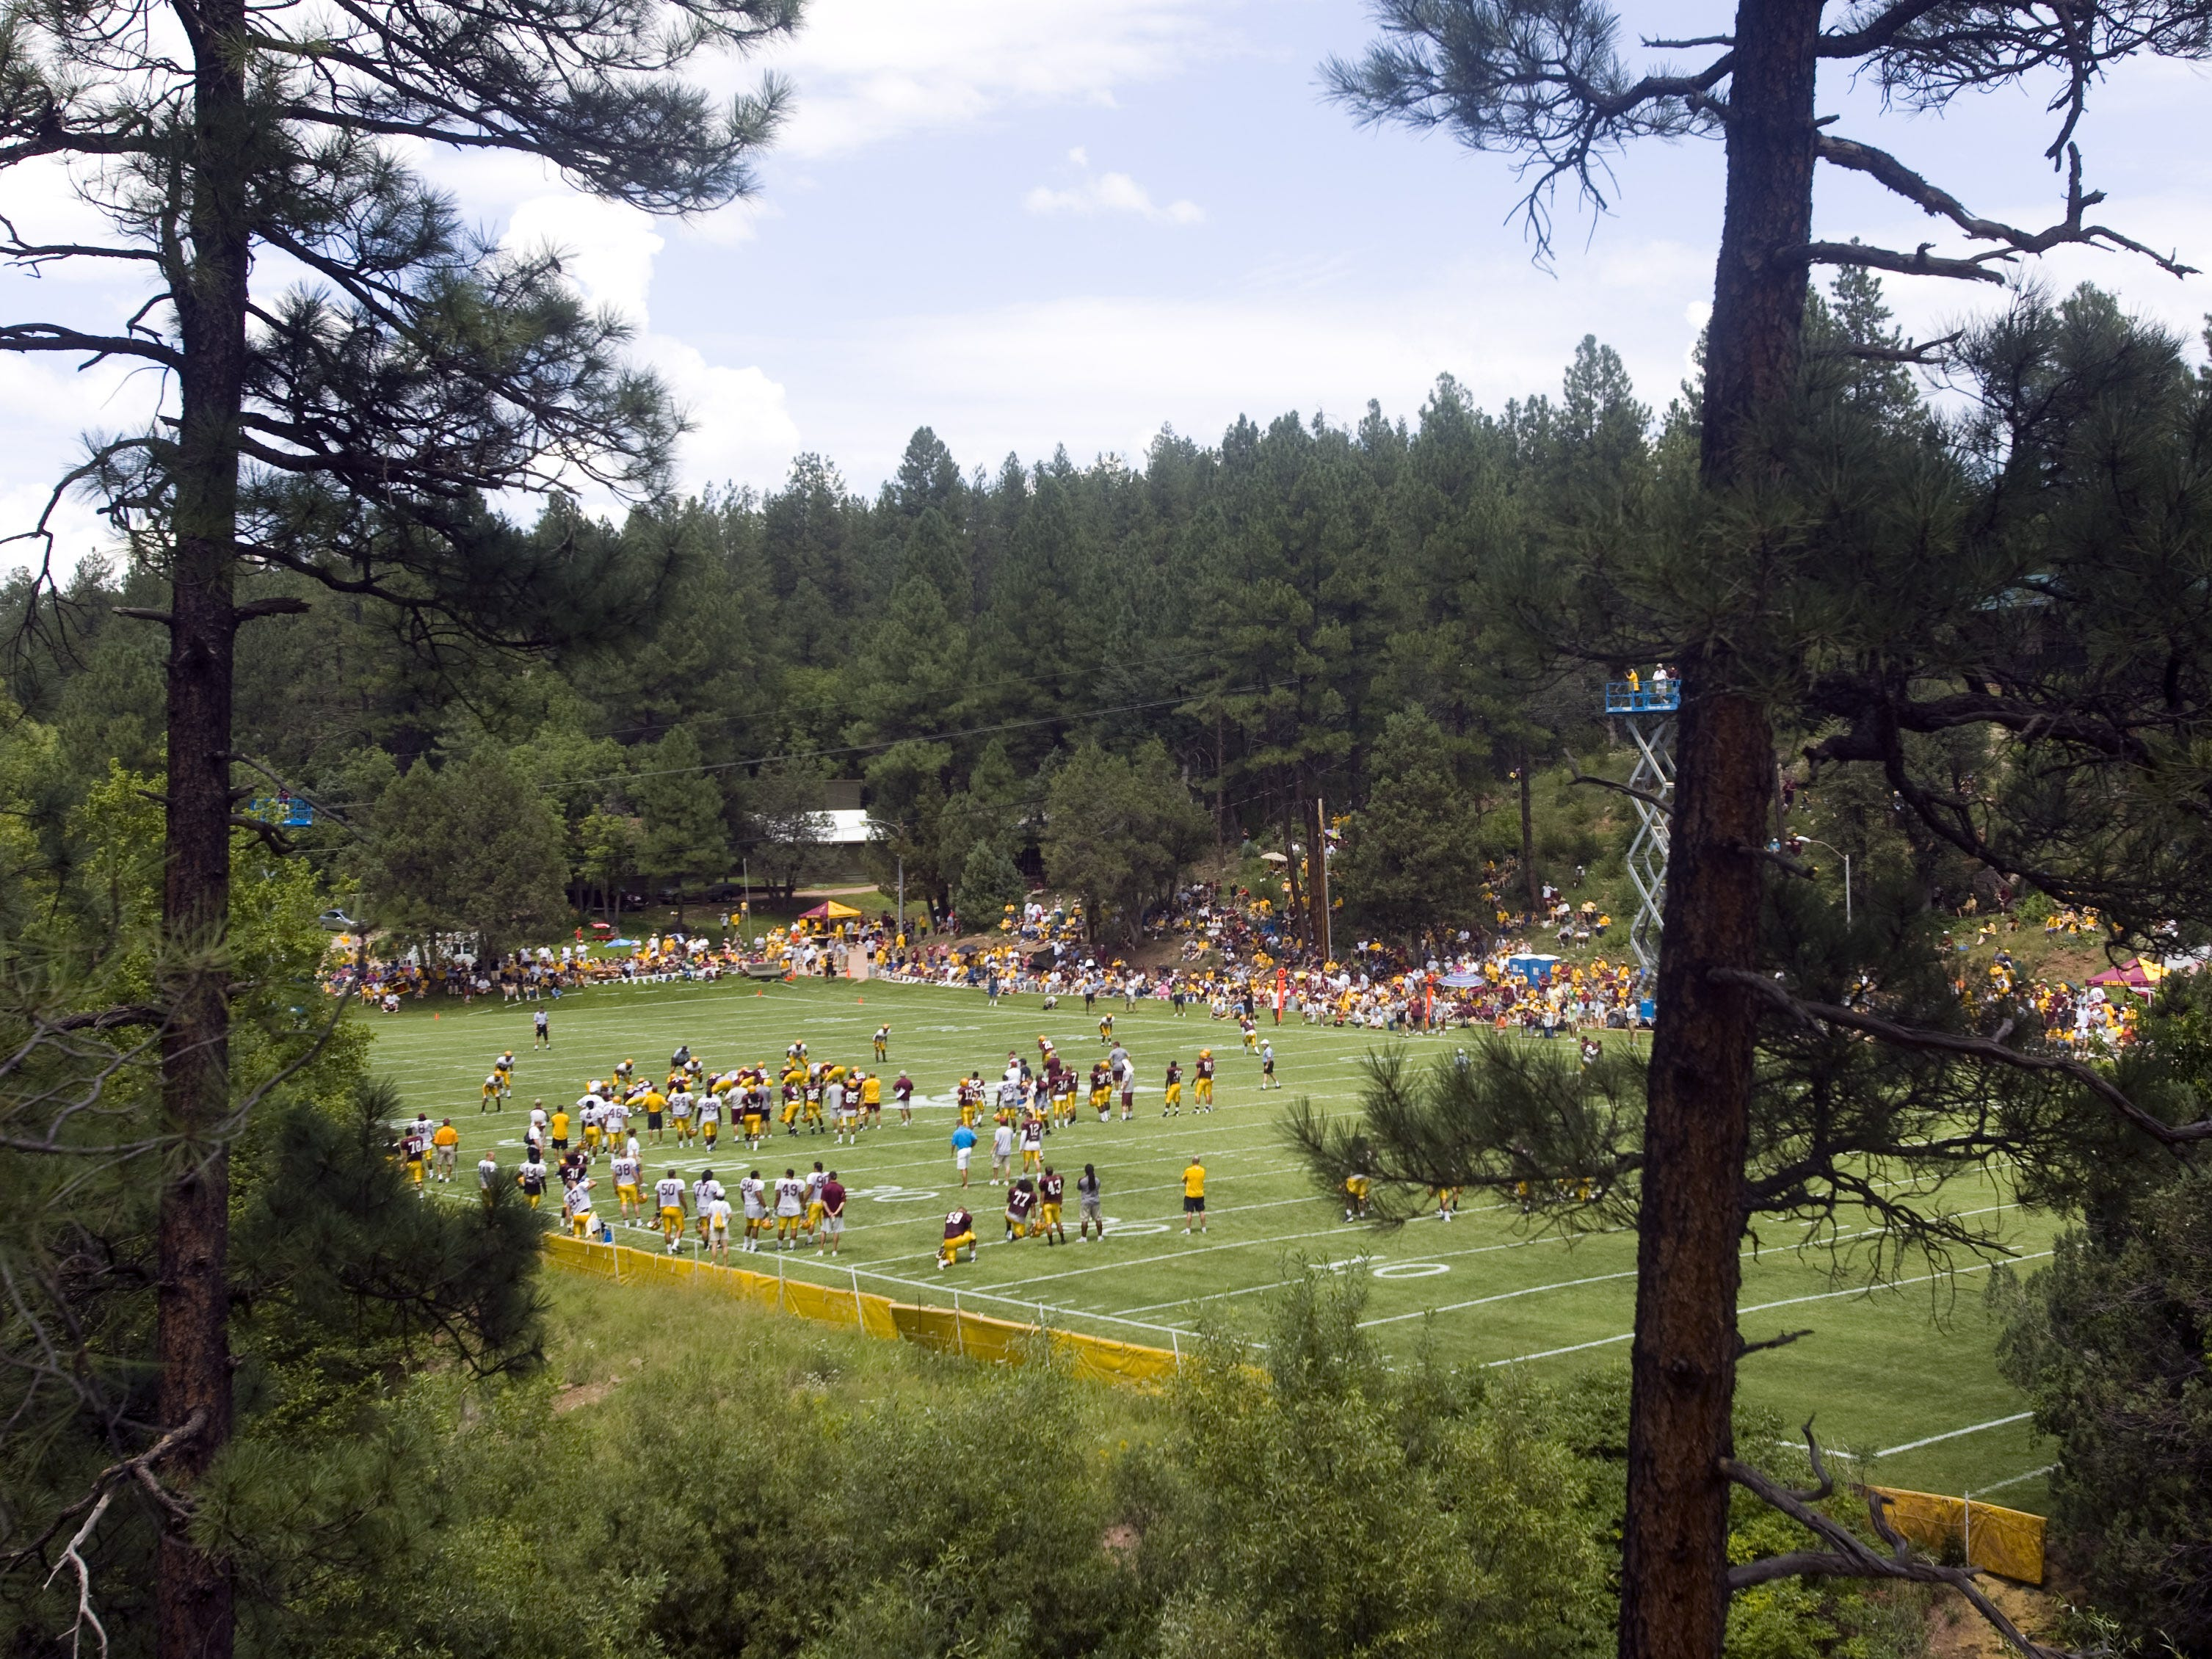 ASU holds an intra team scrimmage at Camp Tontozona, east of Payson, on Aug. 16, 2008. Camp Tontozona has been updated with no cabins, lodges and a second field since Michael Crow became ASU president.